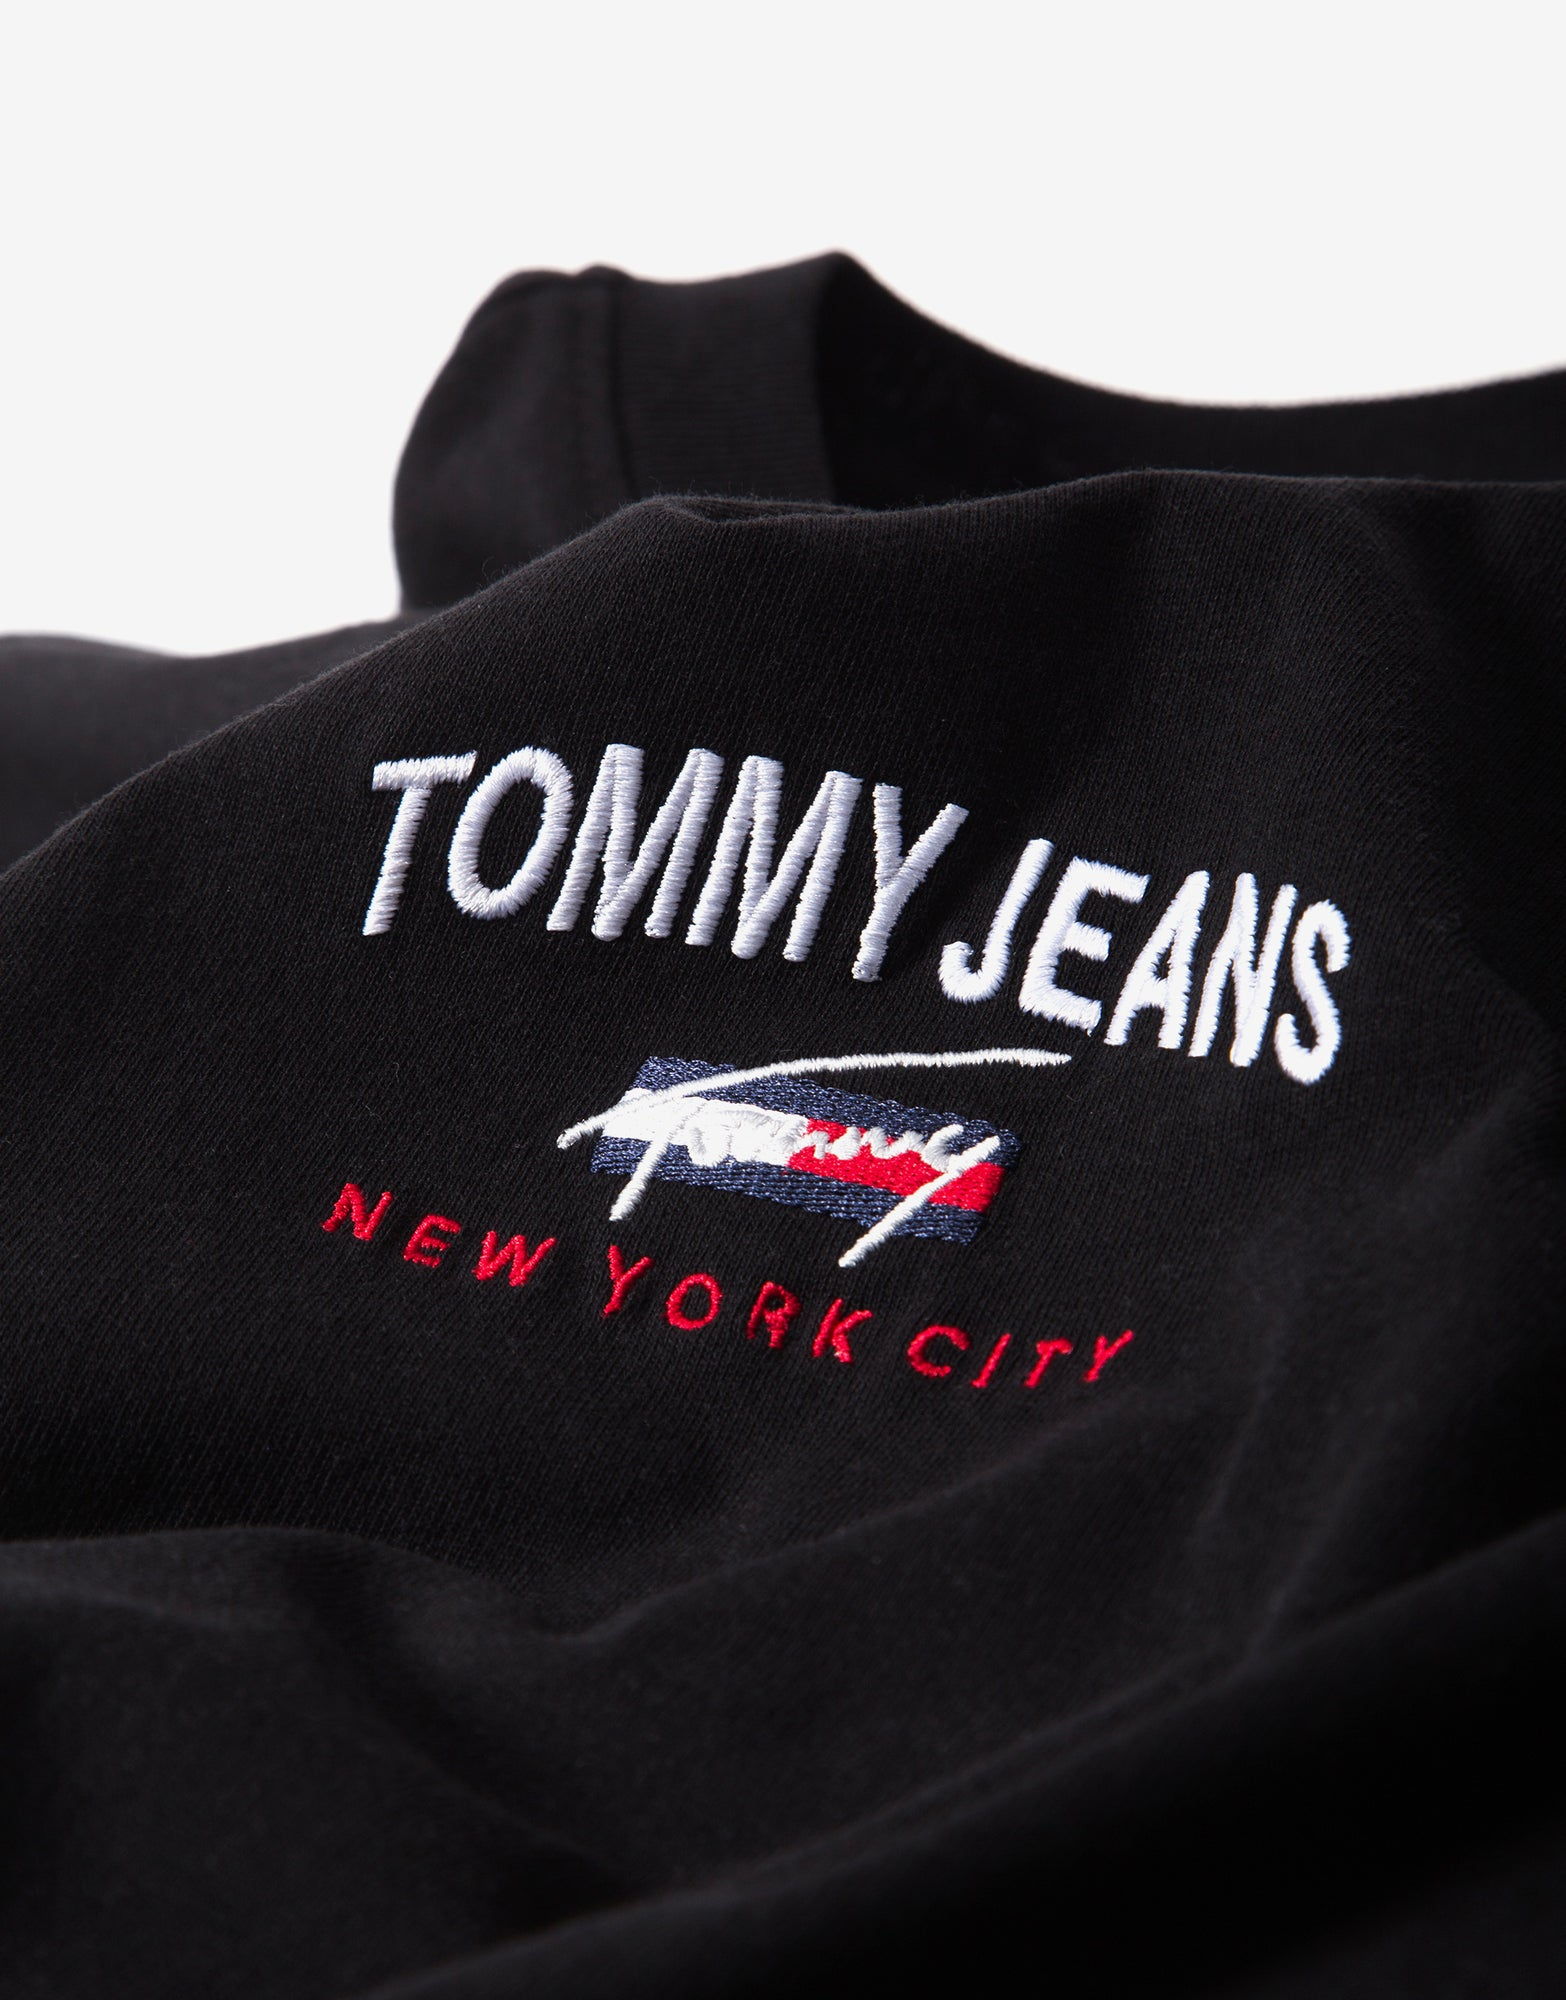 Tommy Jeans TJM Oversized Graphic T Shirt - Black/White